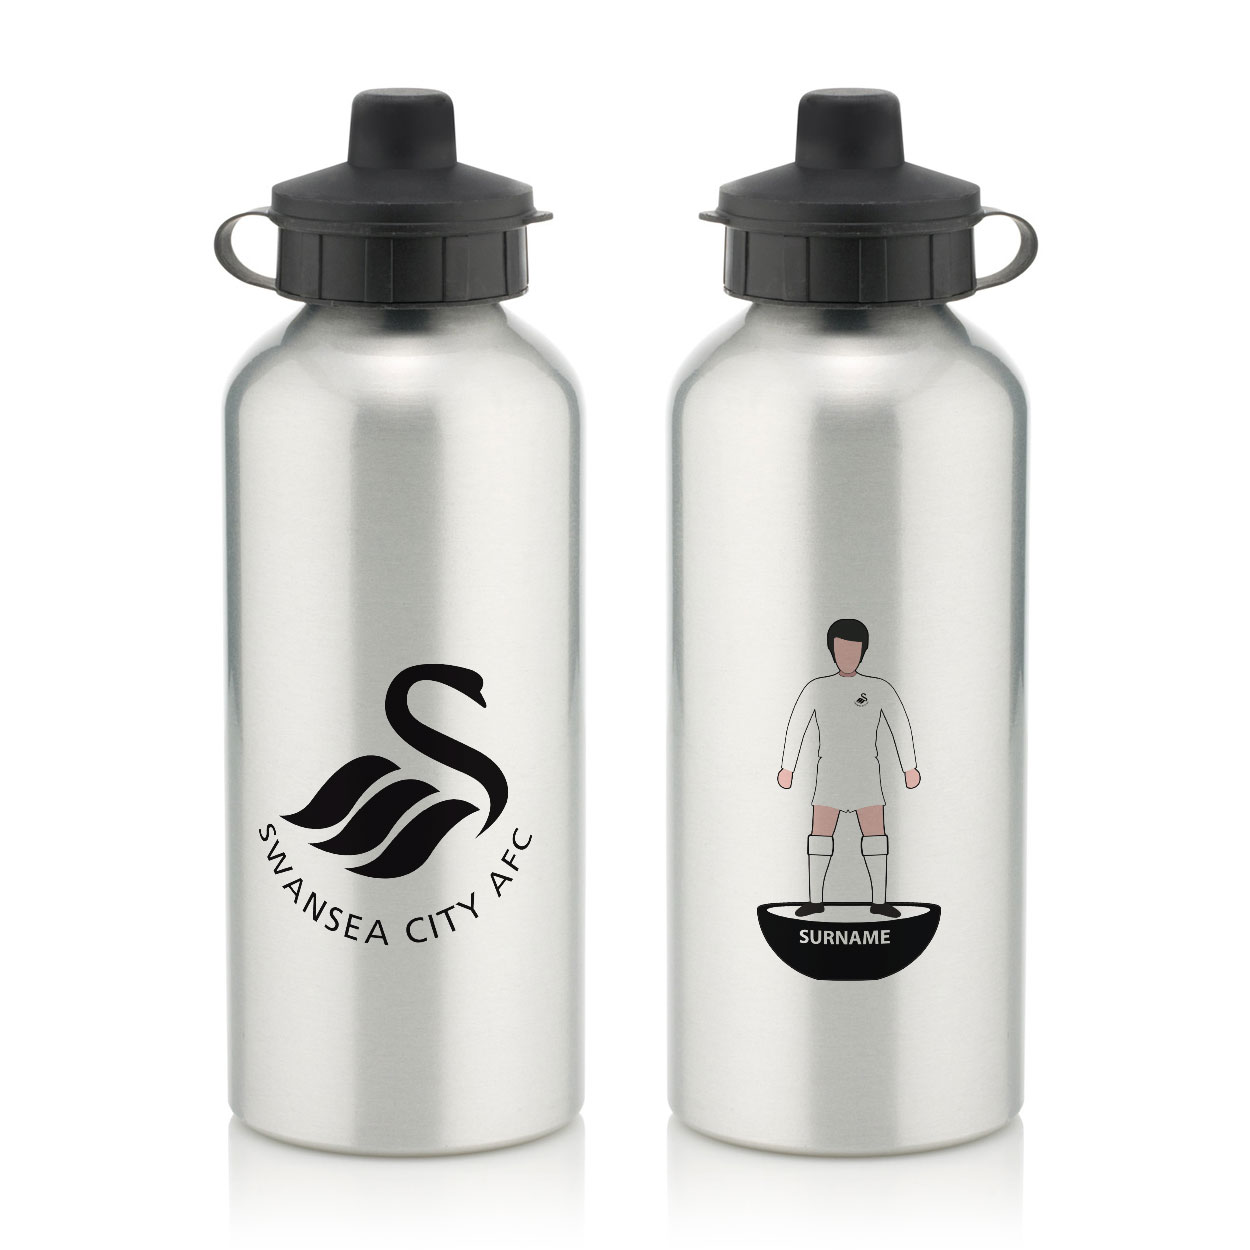 Swansea City AFC Player Figure Water Bottle